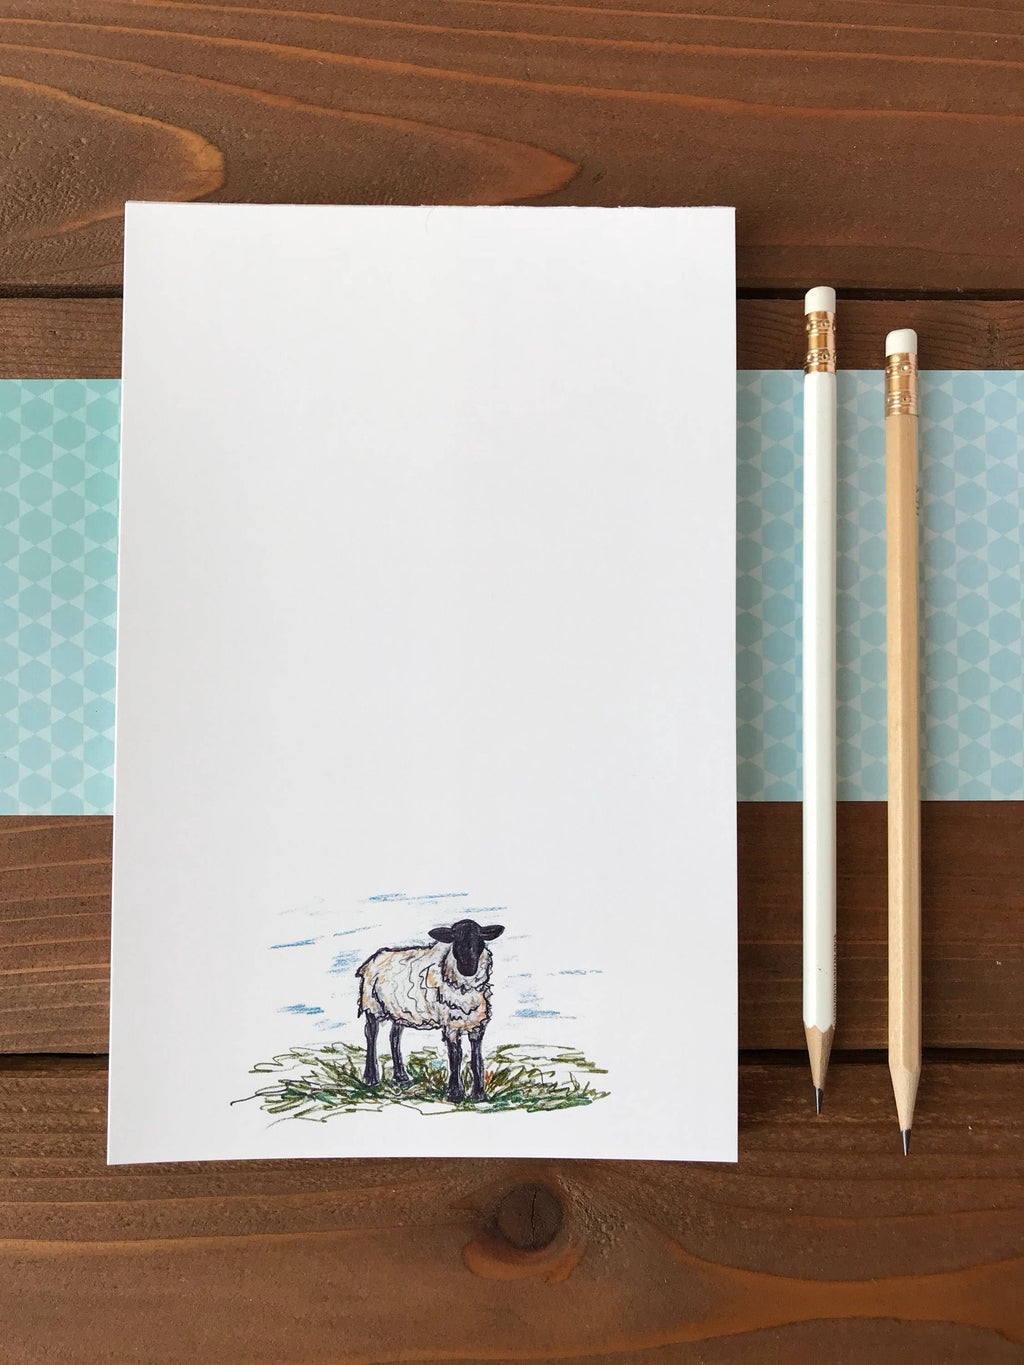 Sheep Notepad, Personalized Notepad, Sheep Art, Beautiful Ewe, Magnetic Notepad, Gift For Farmer, Animal Lover Gift, Cute Sheep  - 5.5 x 8.5